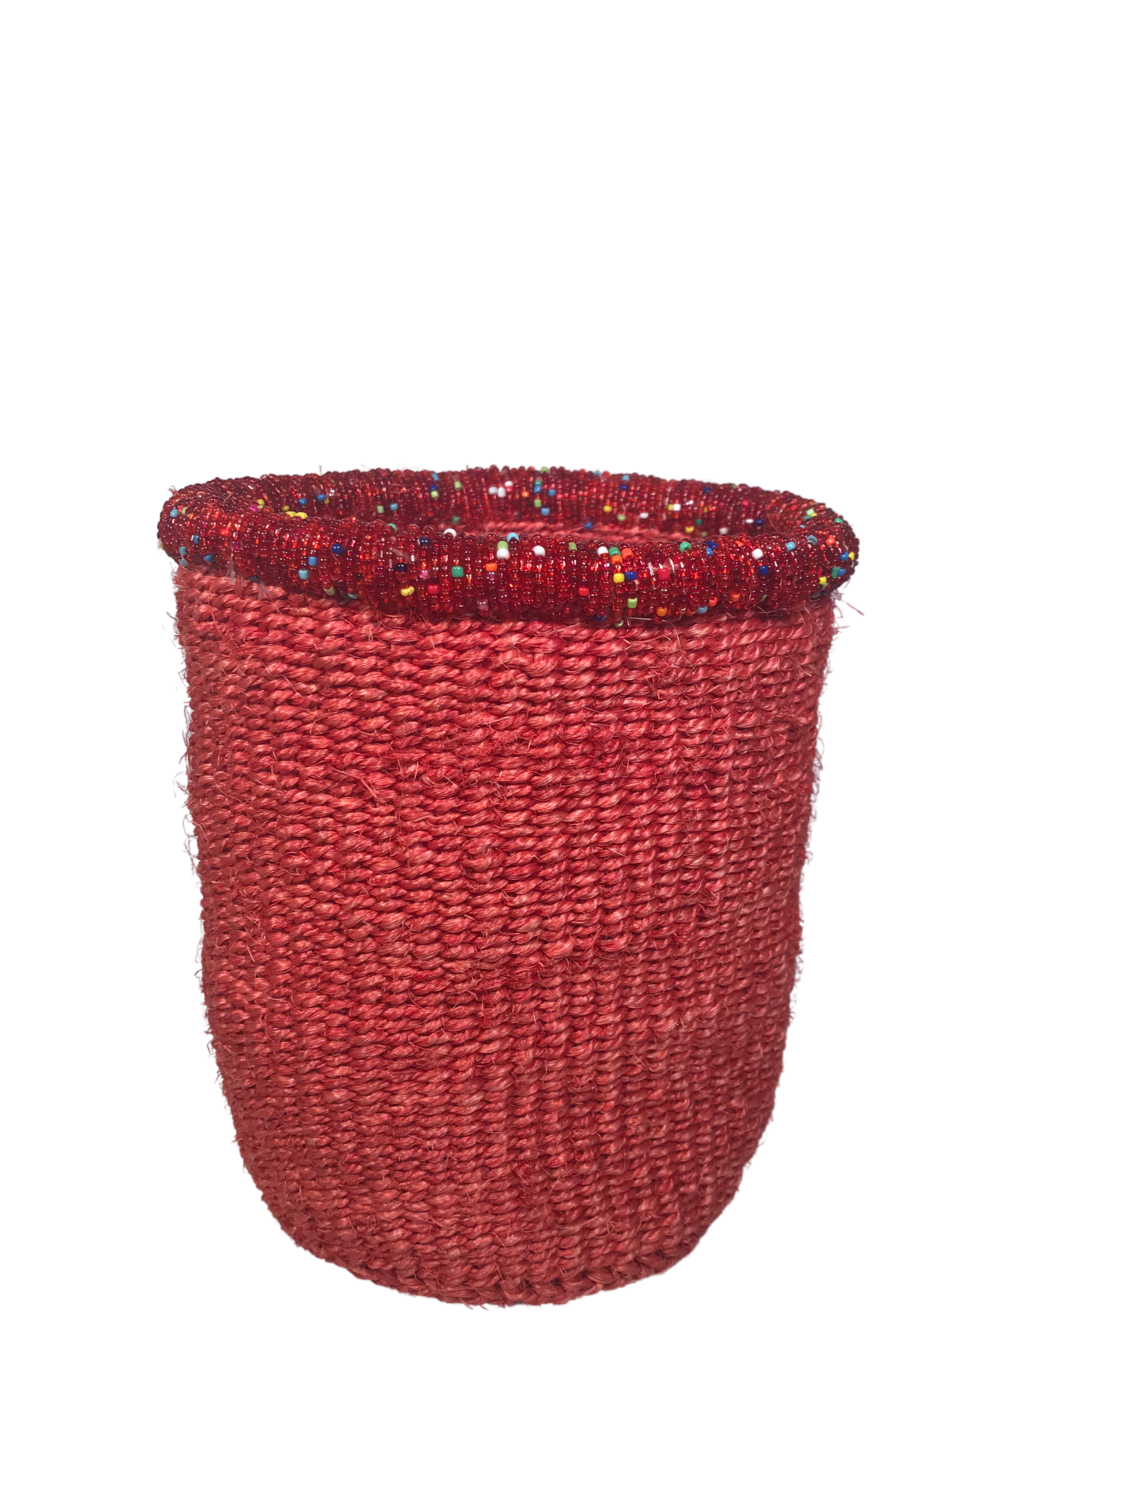 7 Inch Beaded Red Basket